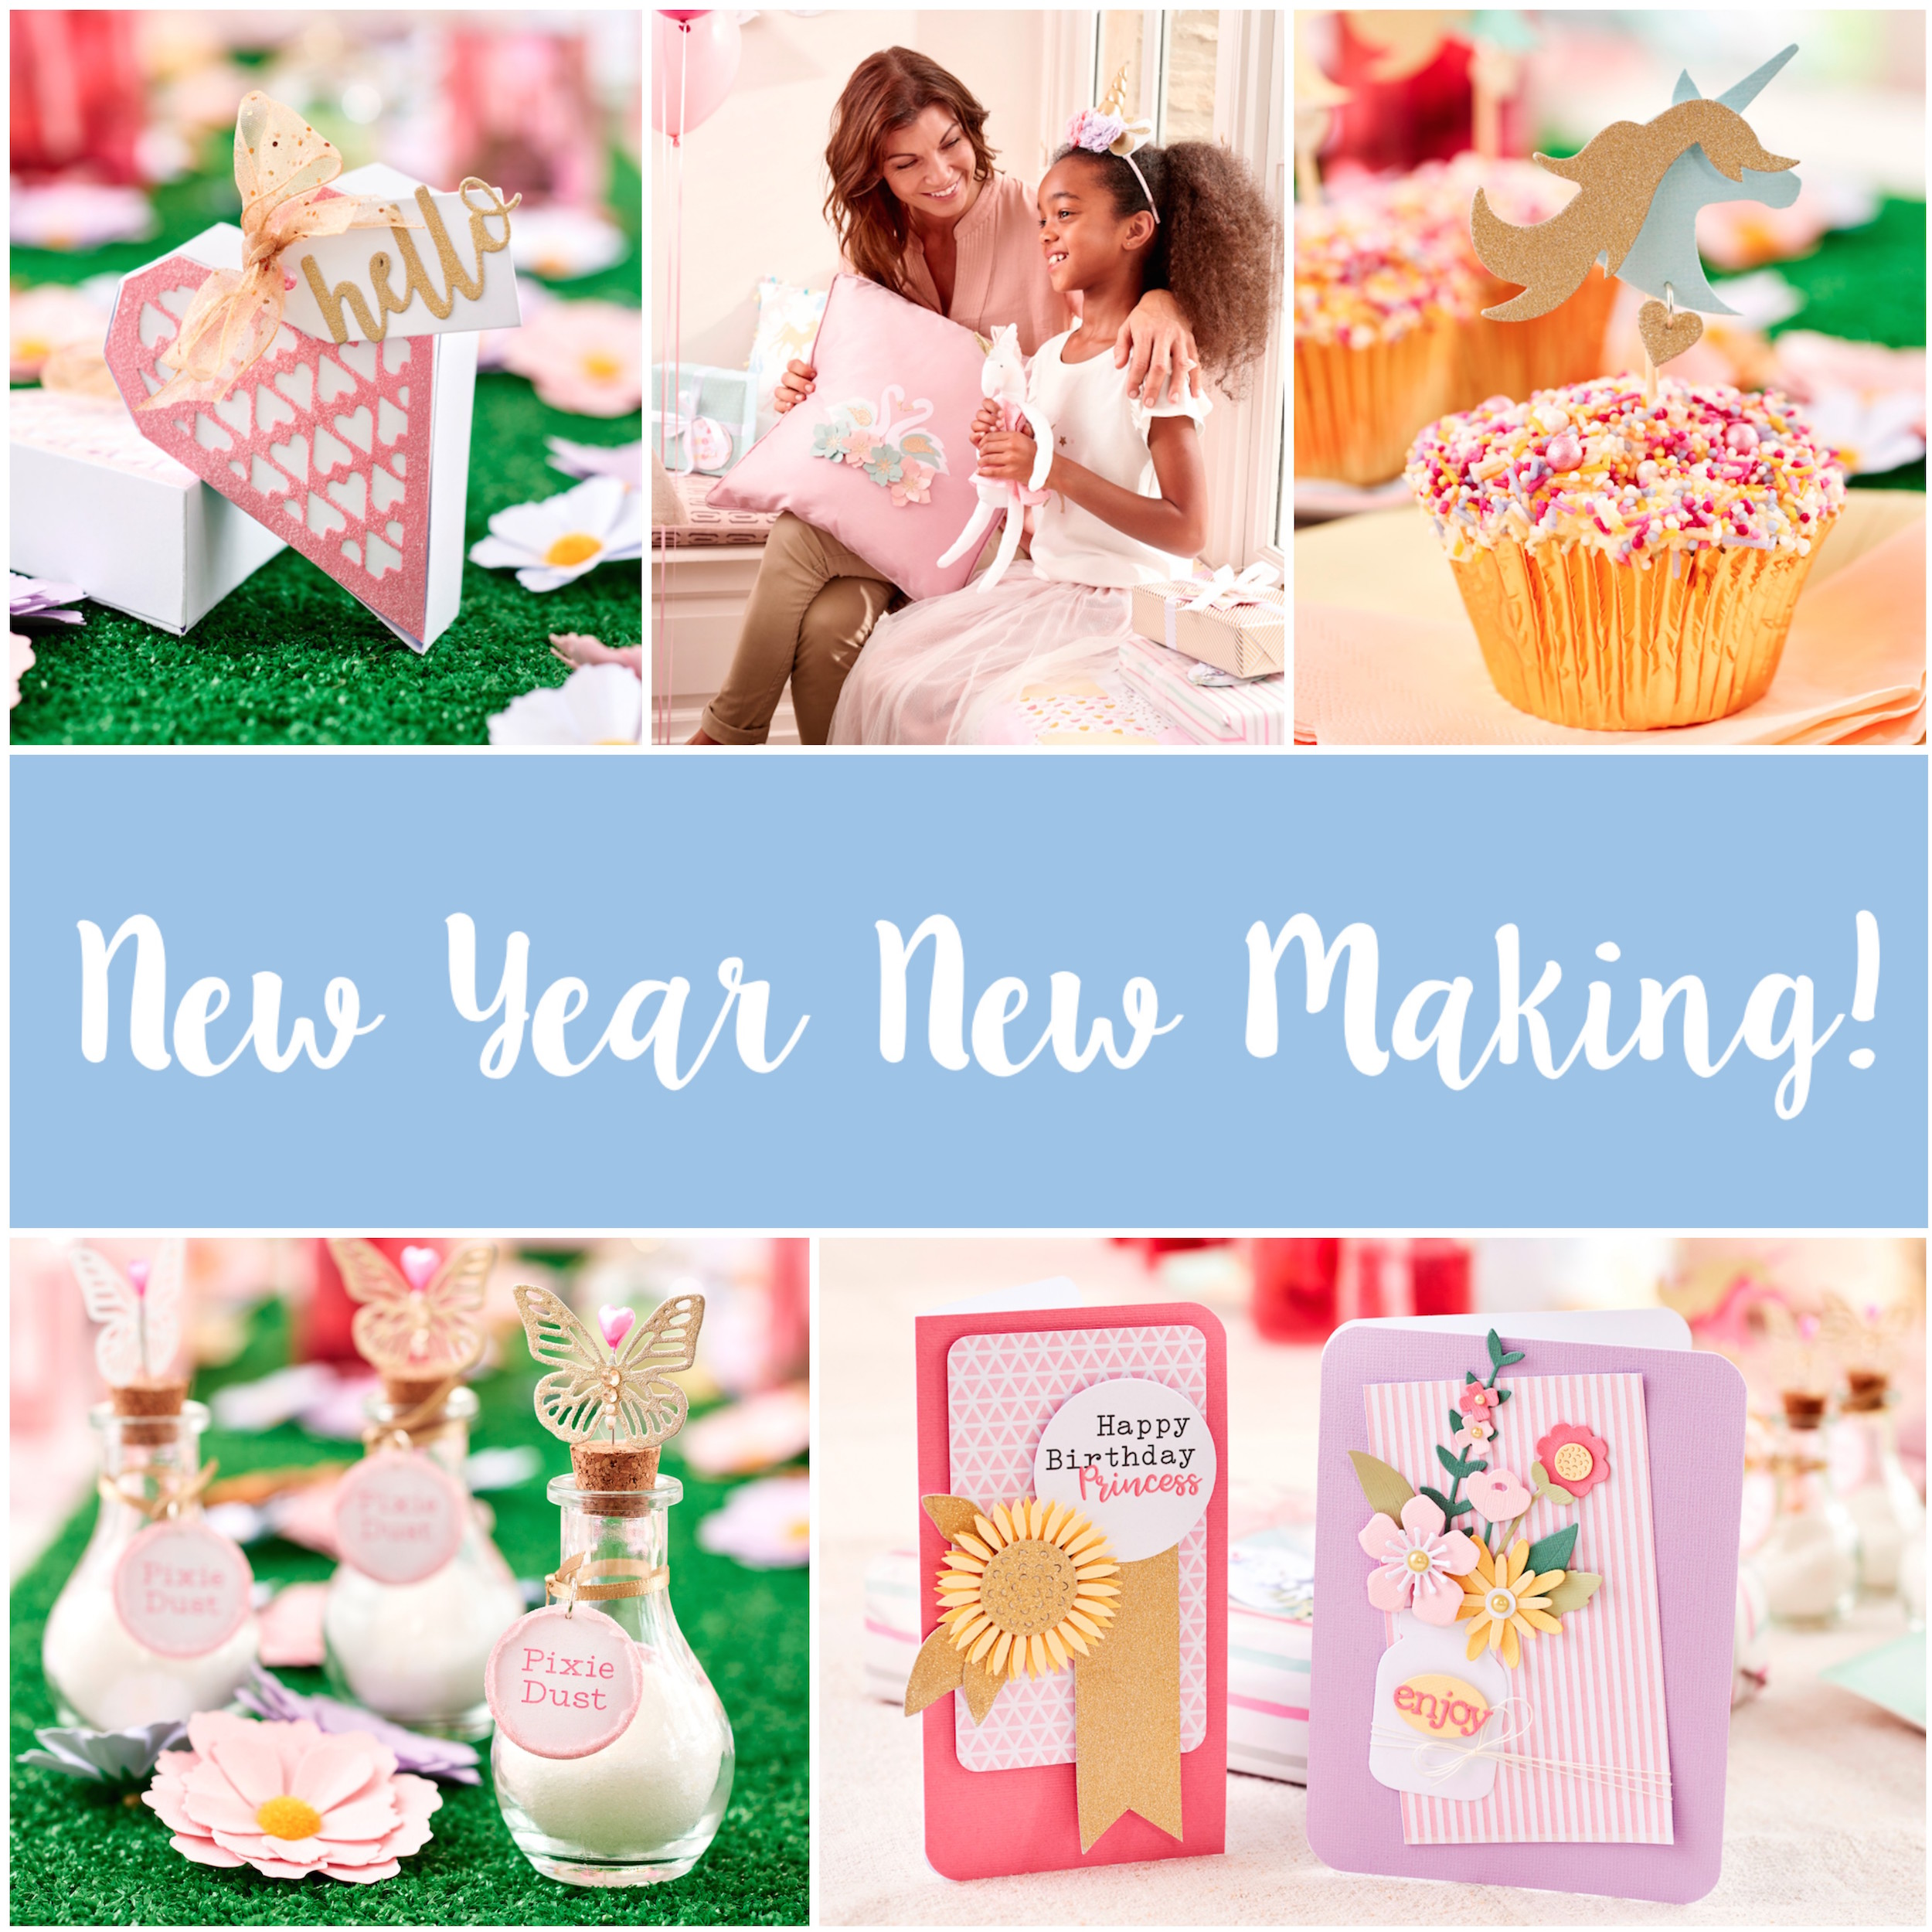 Reach your crafty goals with these New Year Resolutions!